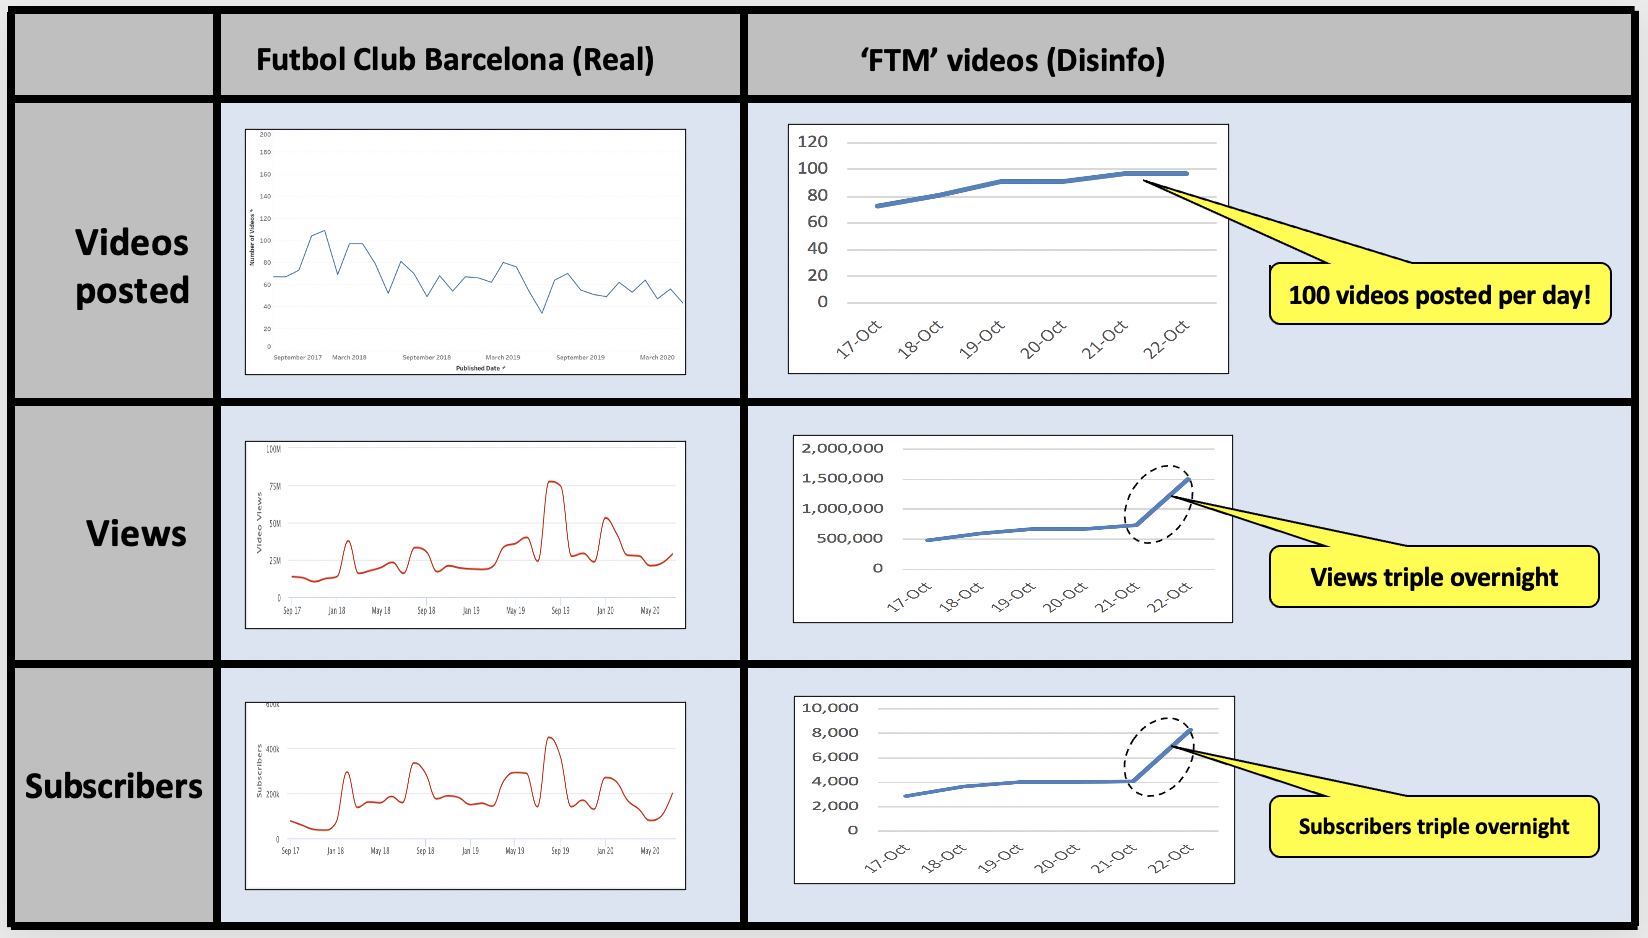 Sudden spikes in the number of views and subscribers is a good indication of suspicious behavior on YouTube.